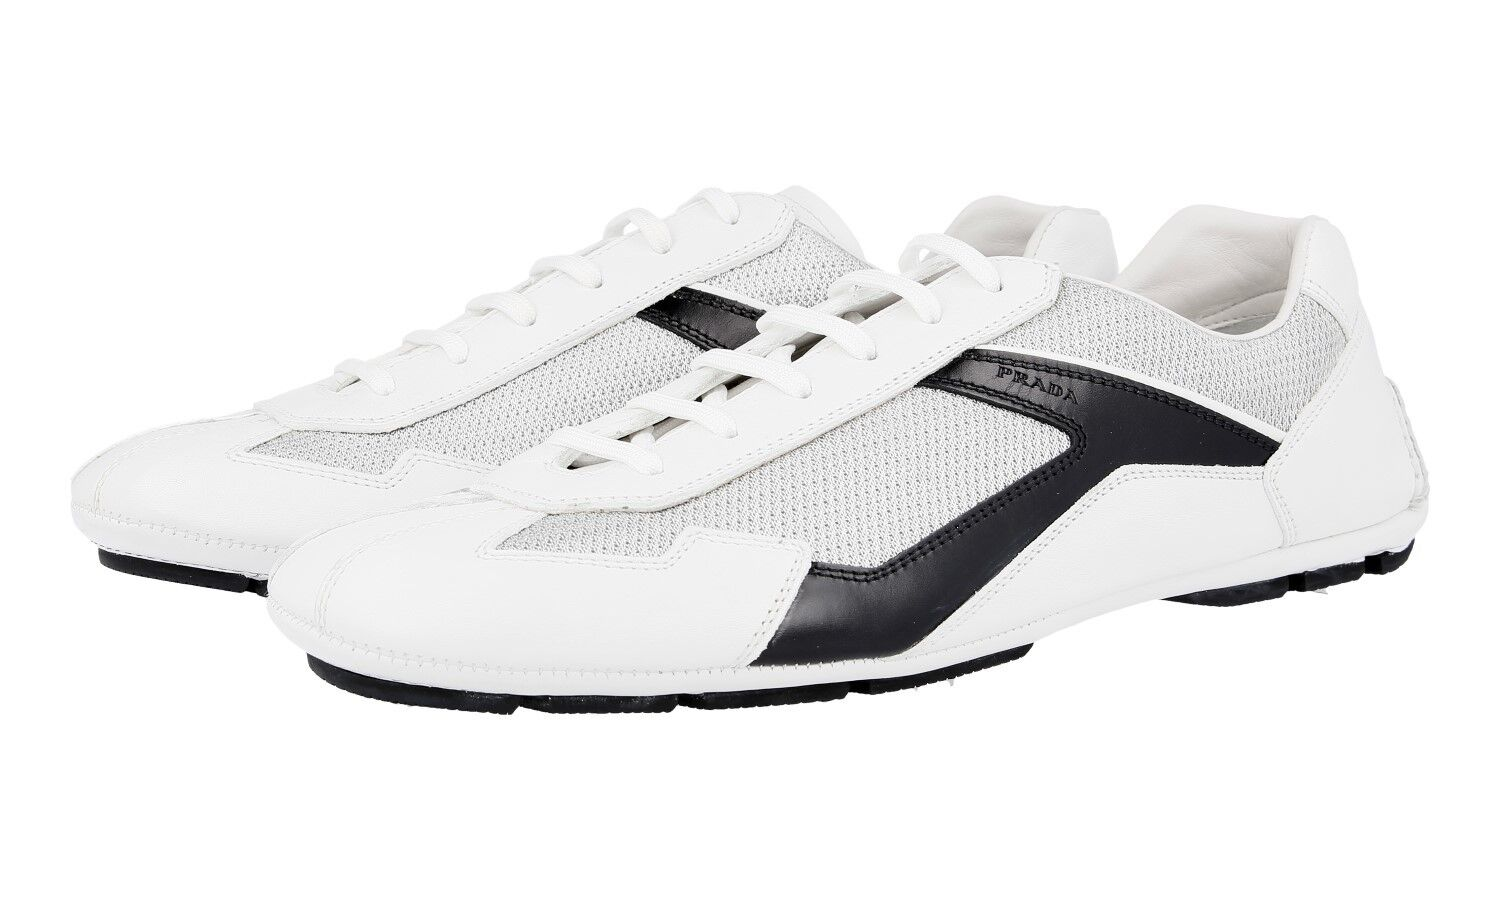 AUTH PRADA MONTE CARLO SNEAKERS SHOES 4E2791 WHITE BLACK US 9.5